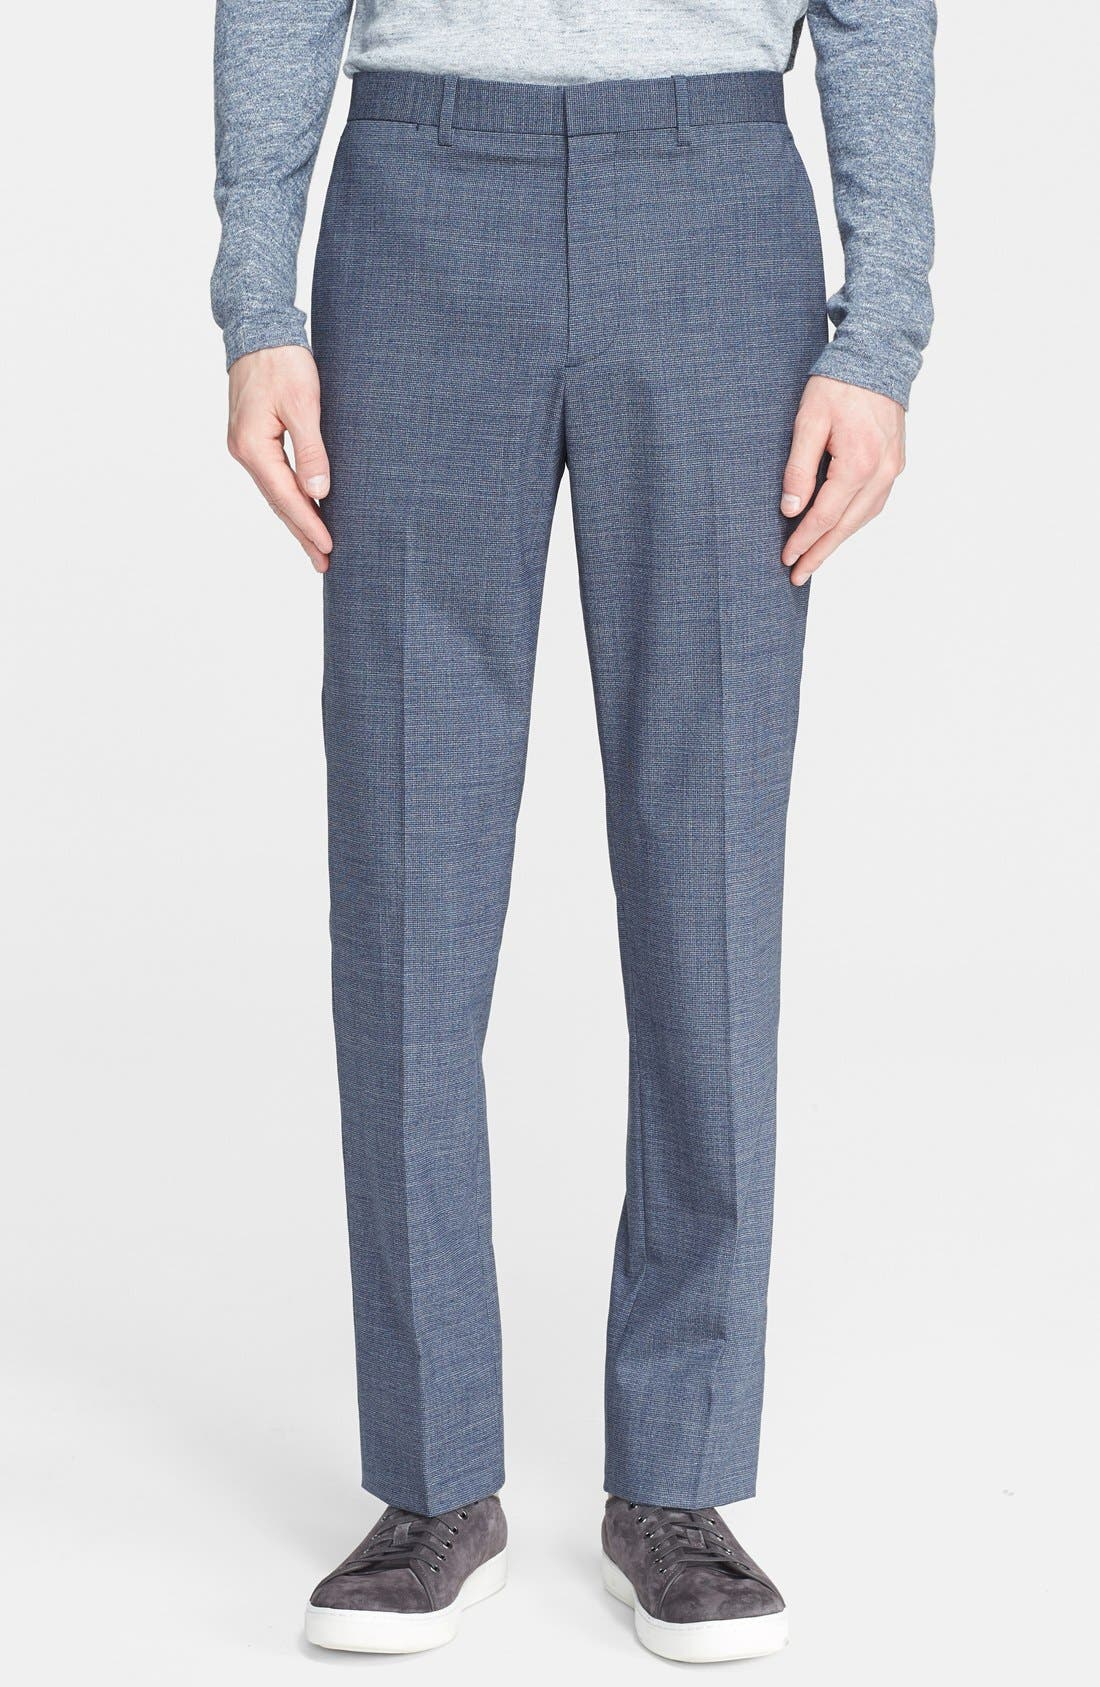 THEORY, 'Jake' Stretch Wool Trousers, Main thumbnail 1, color, 462